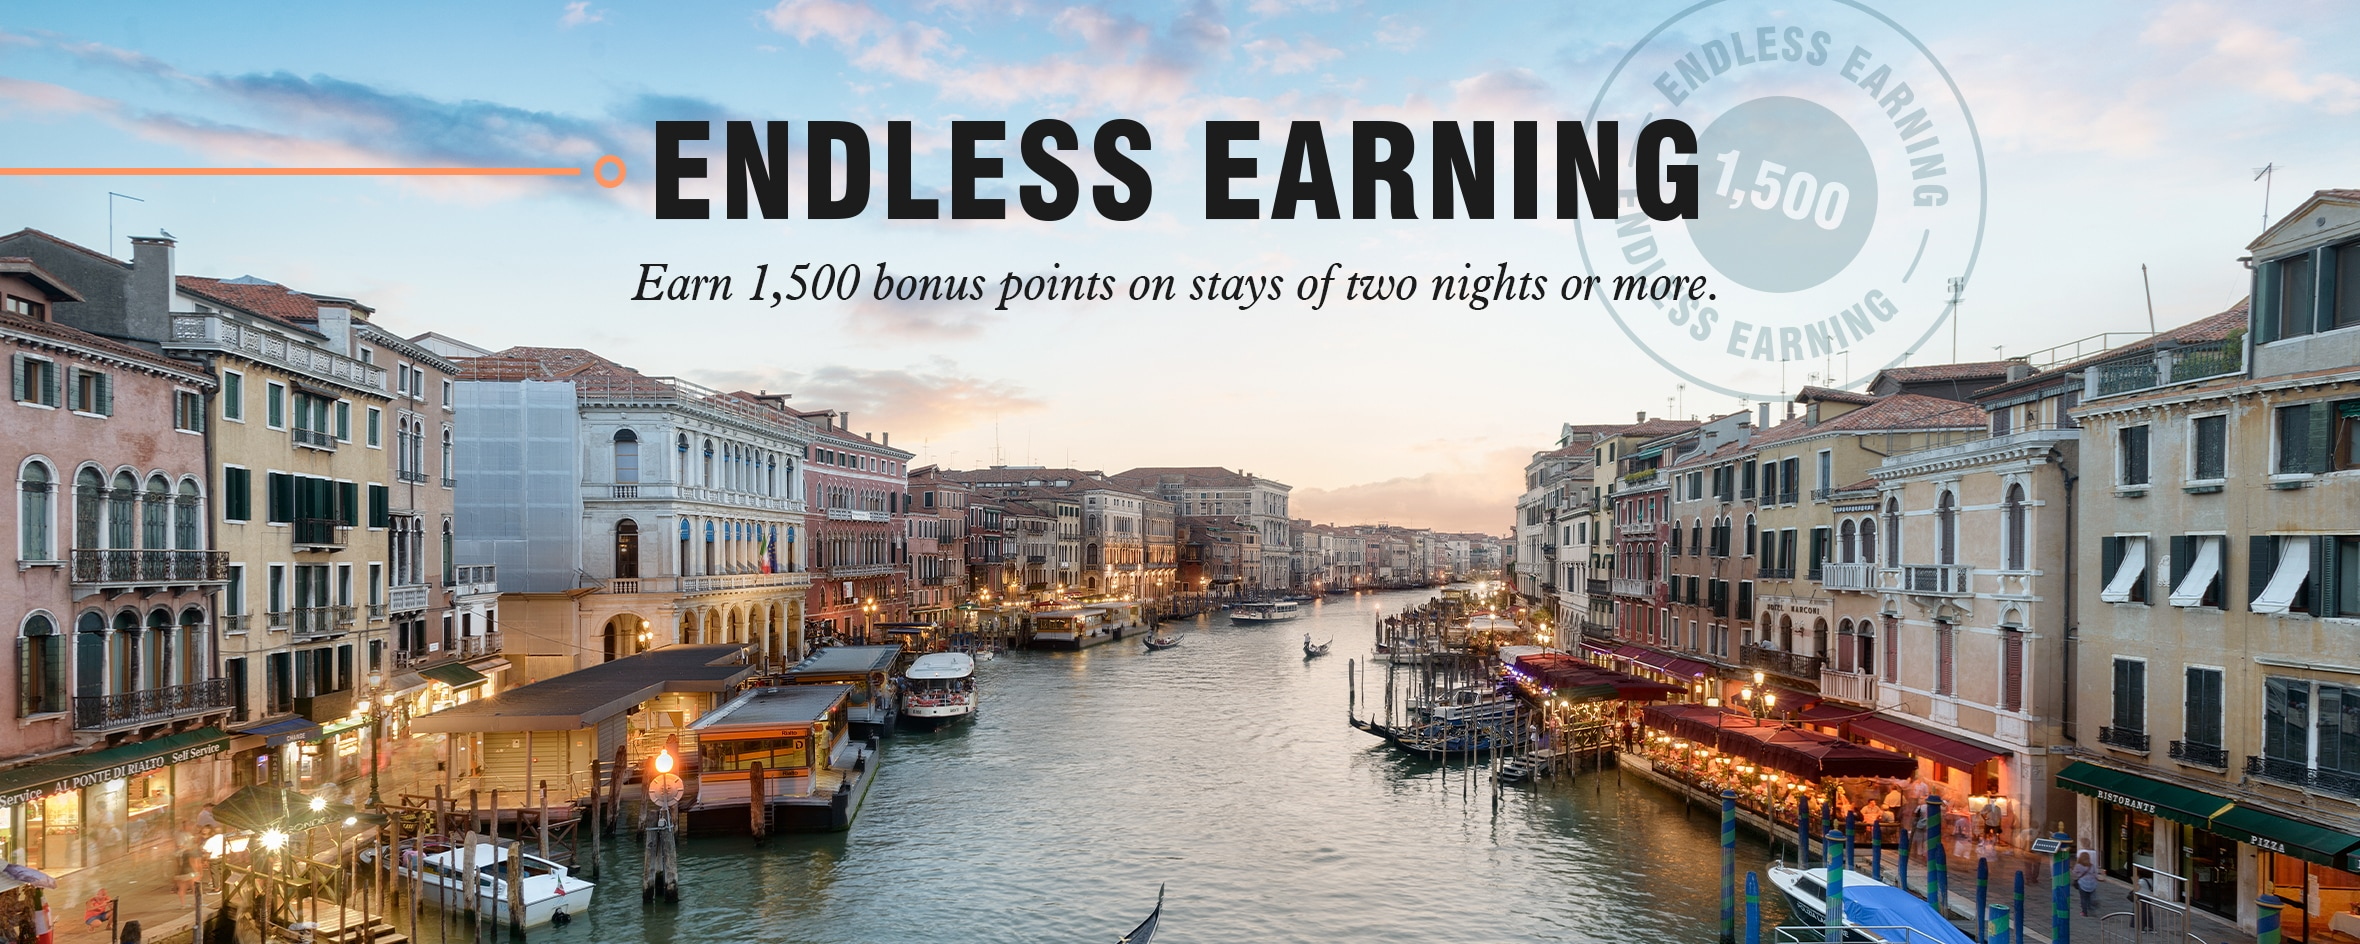 Endless Earning. Earn 1,500 bonus points on stays of two nights or more.